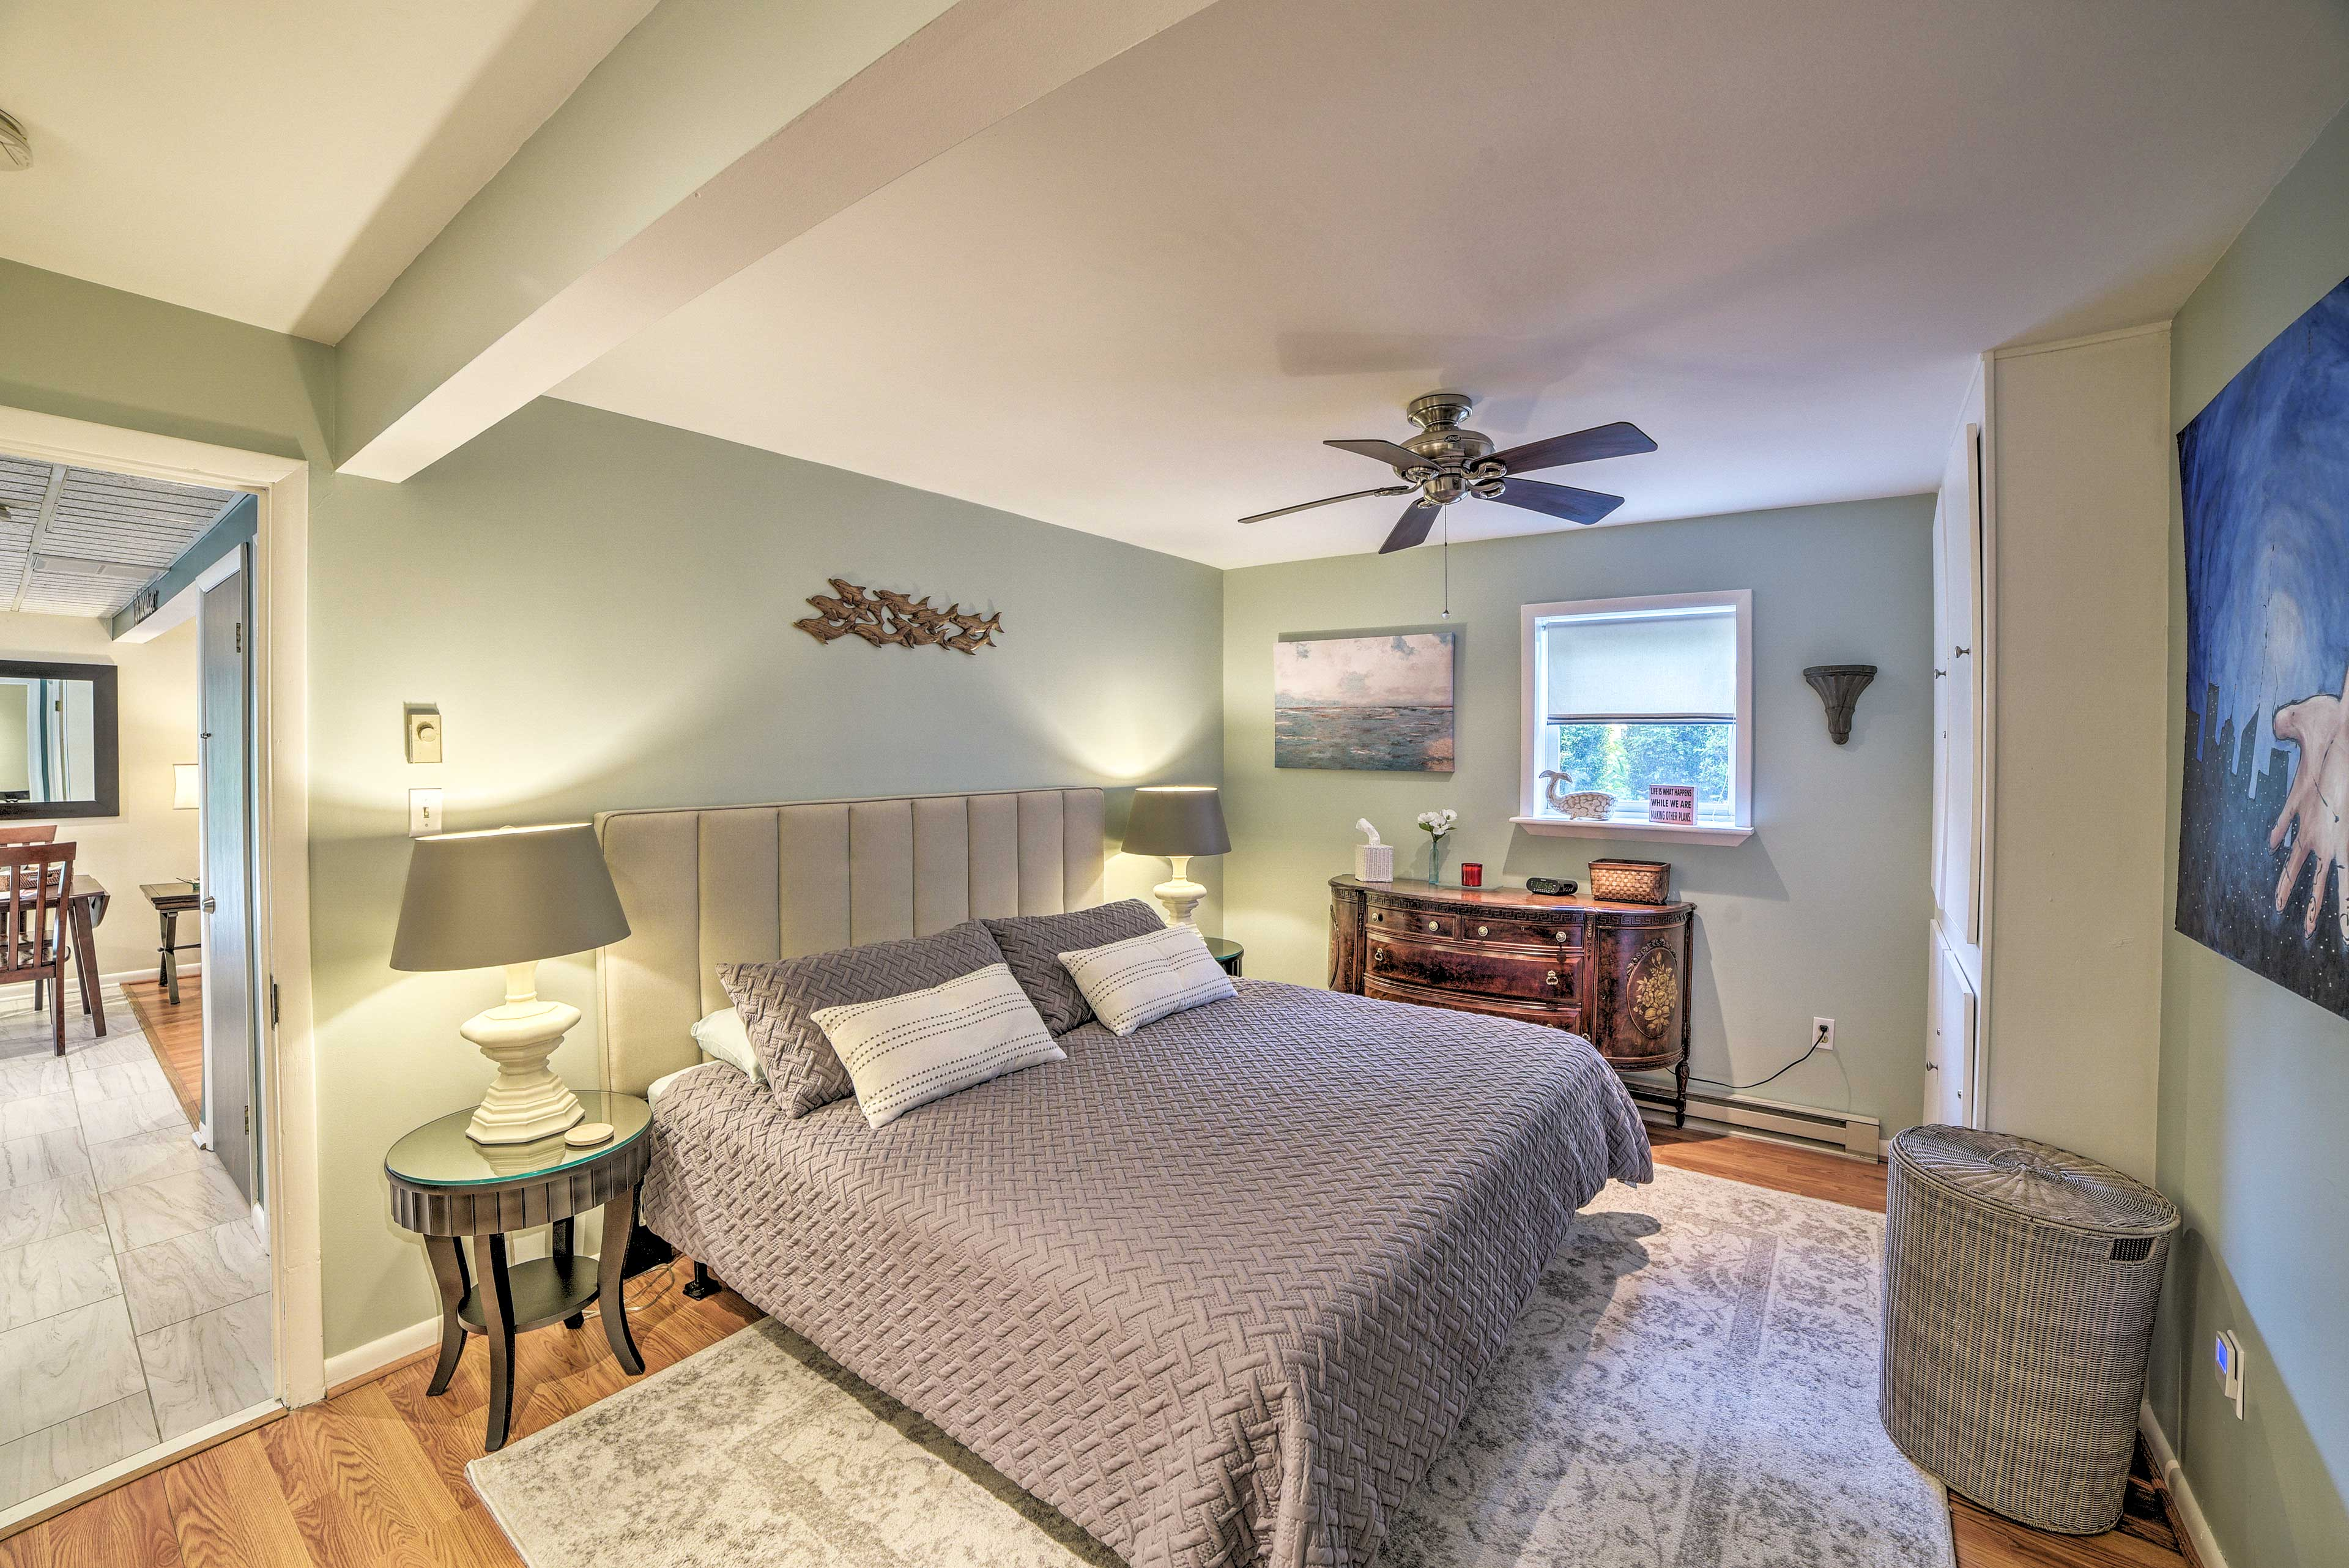 The bedroom hosts a king bed.